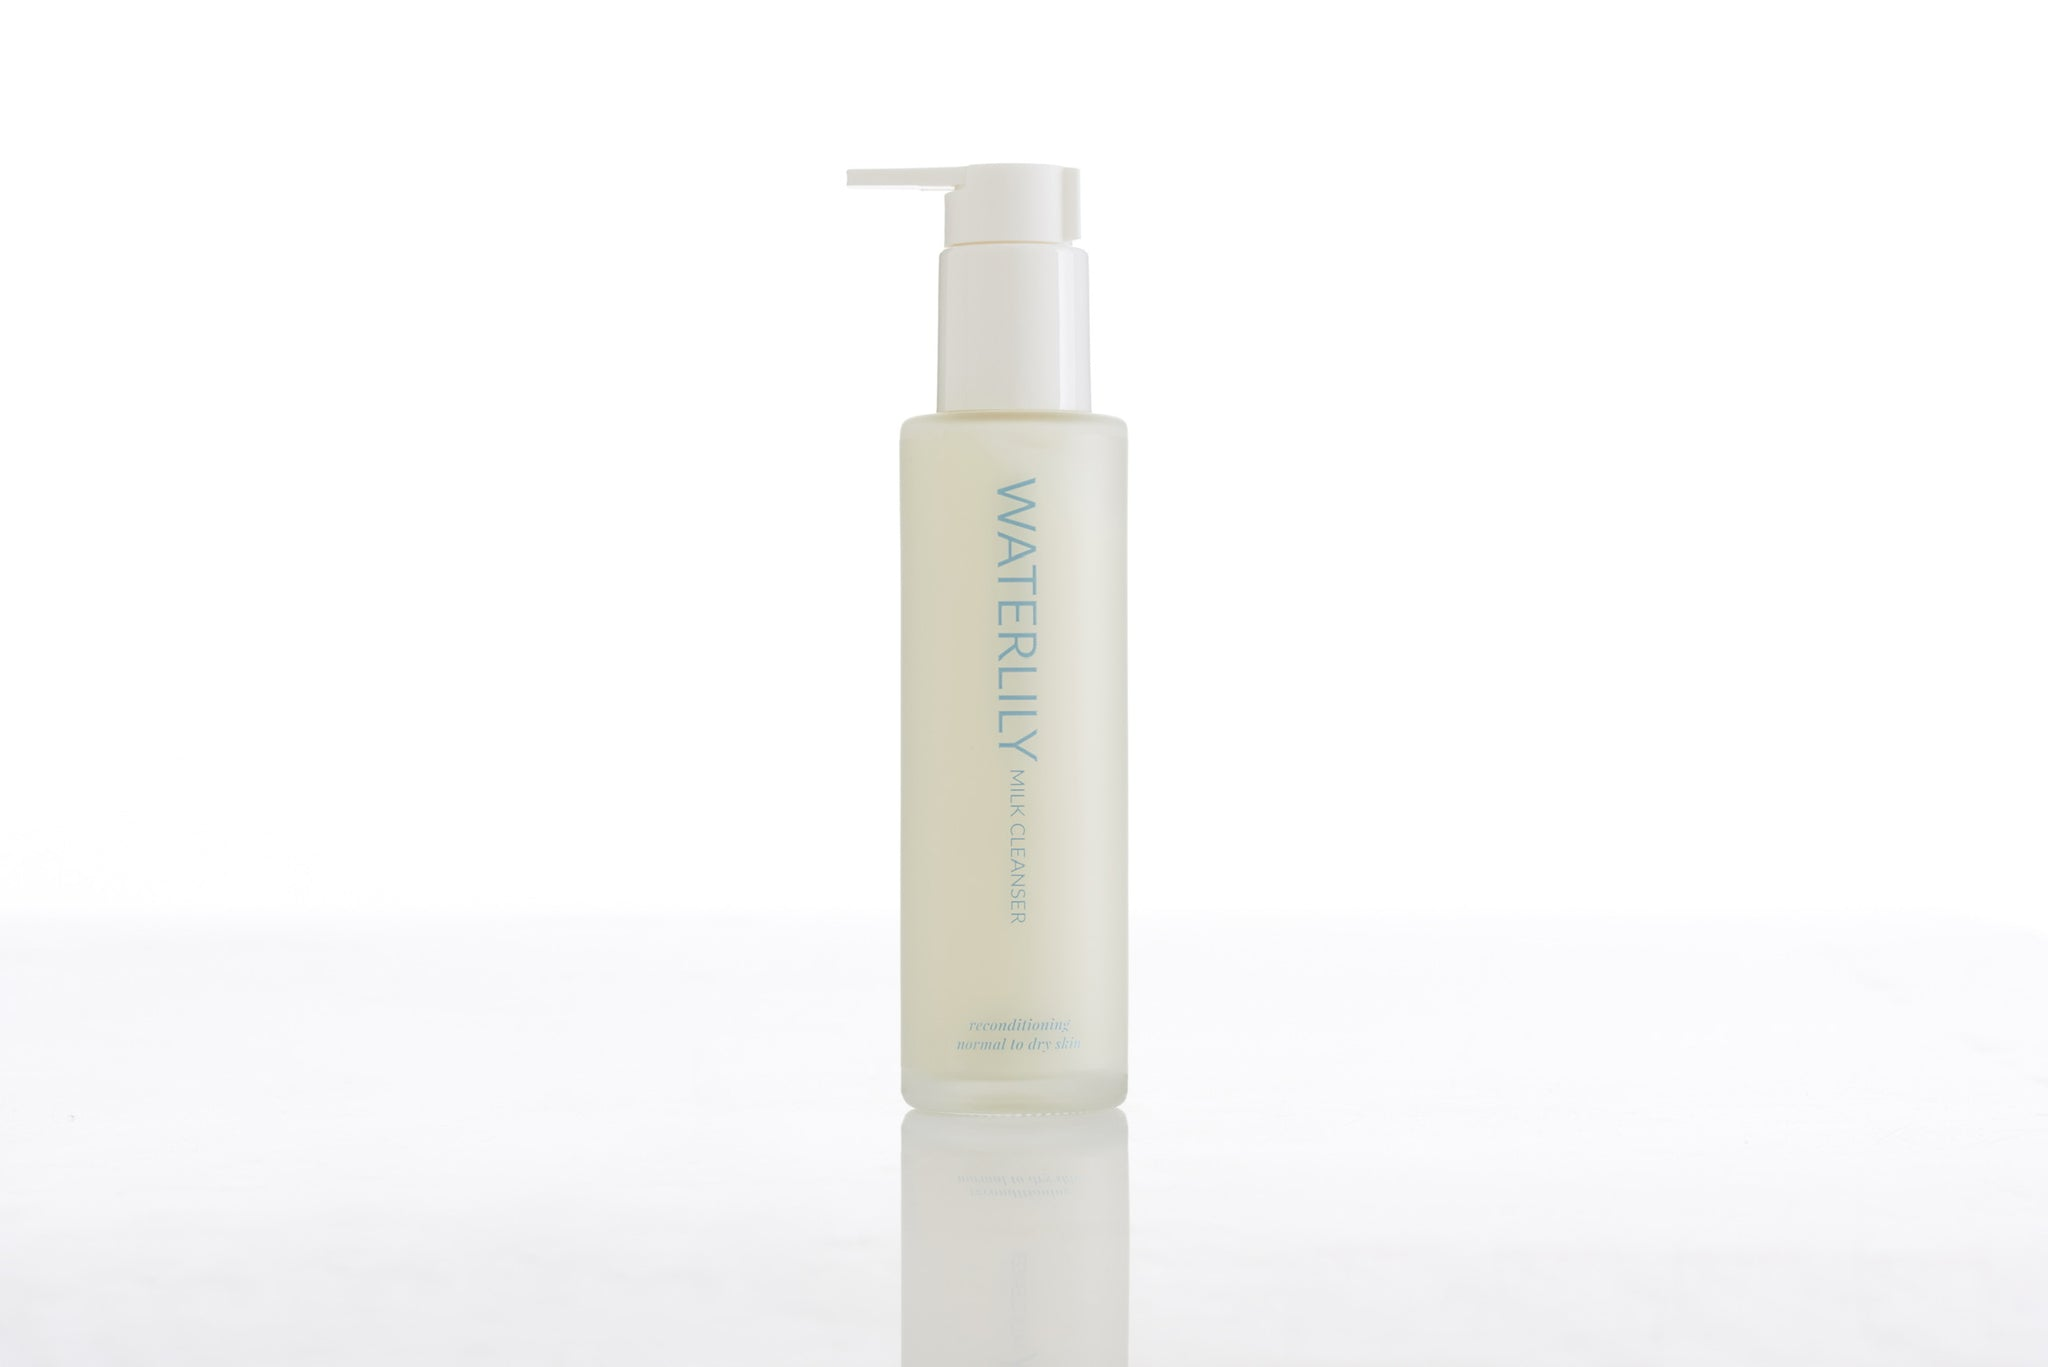 Waterlily - Milk Cleanser